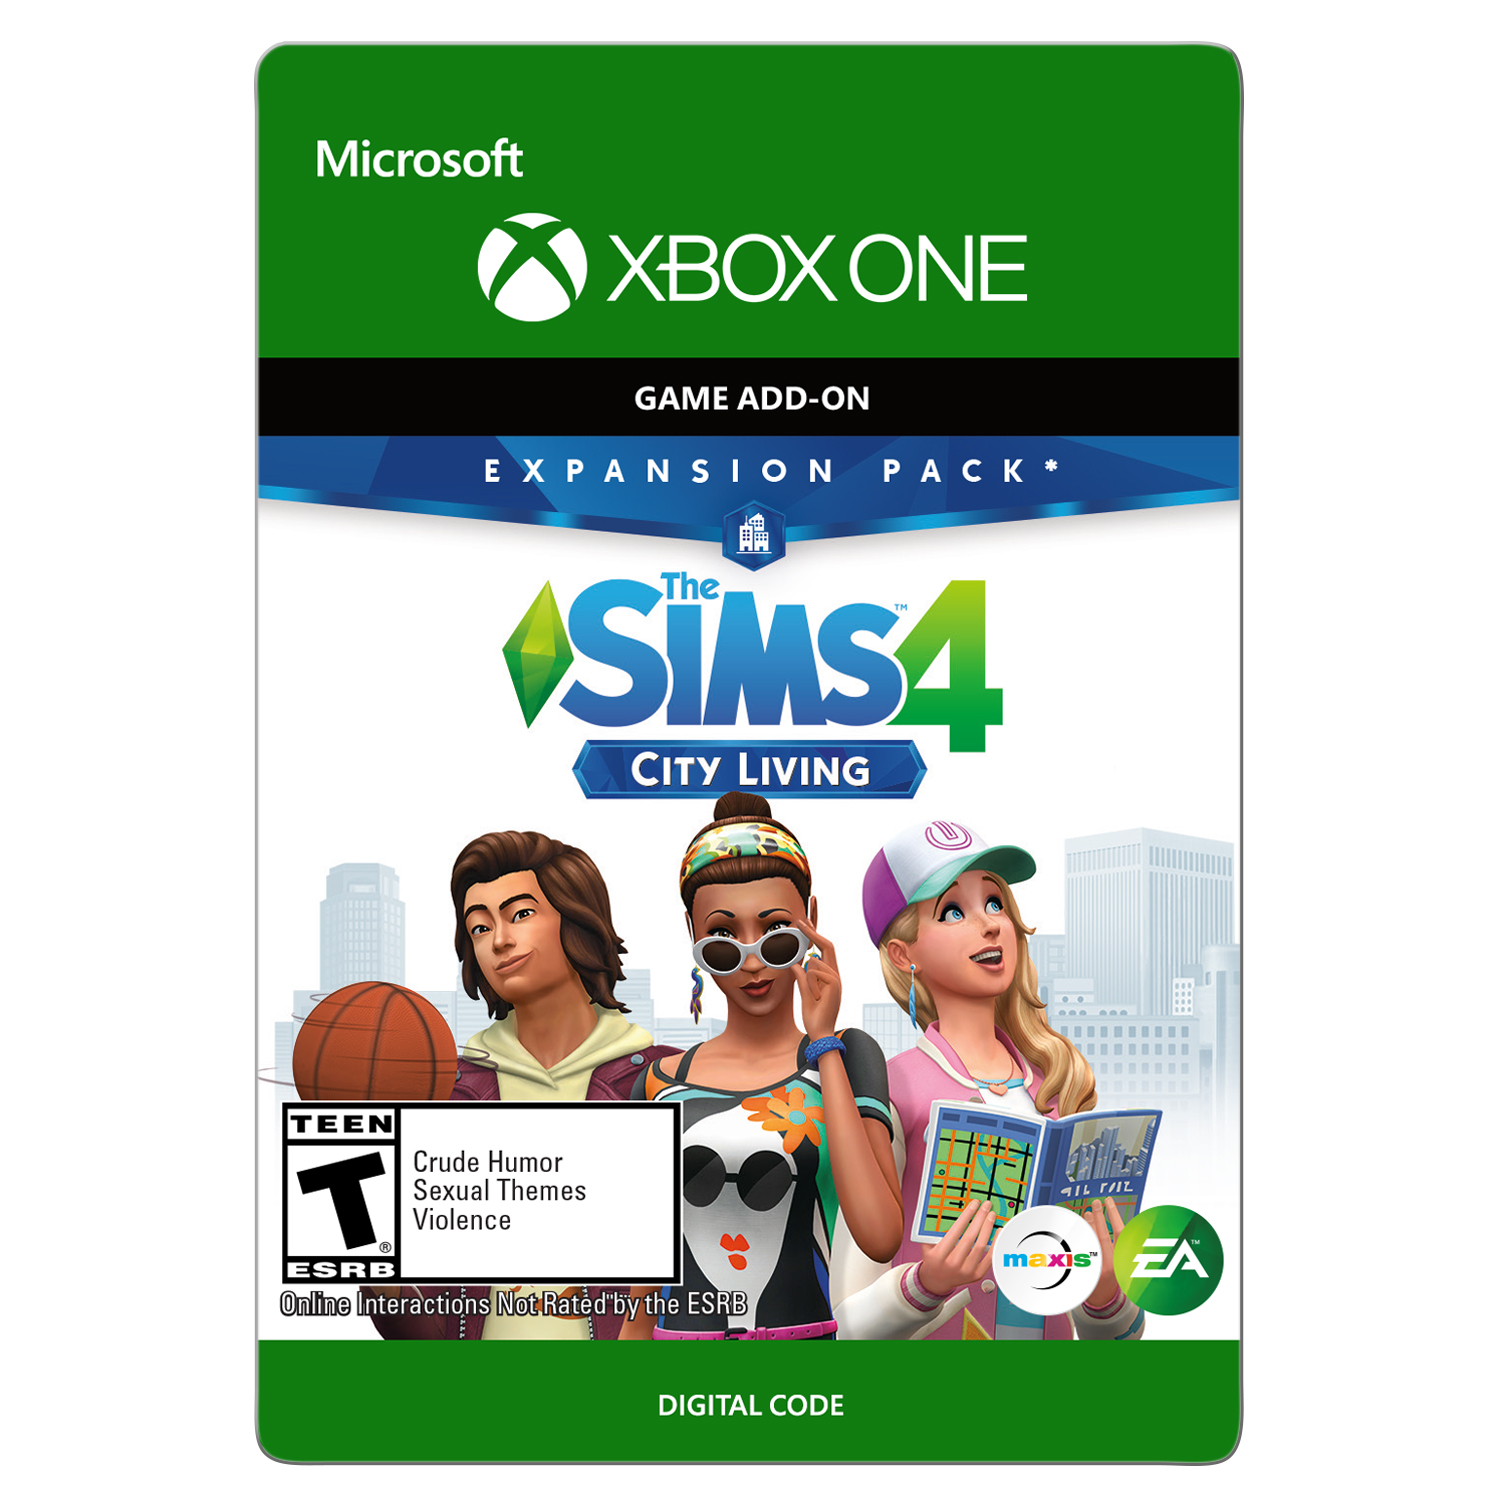 THE SIMS 4 (EP3) CITY LIVING Xbox One (Email Delivery)